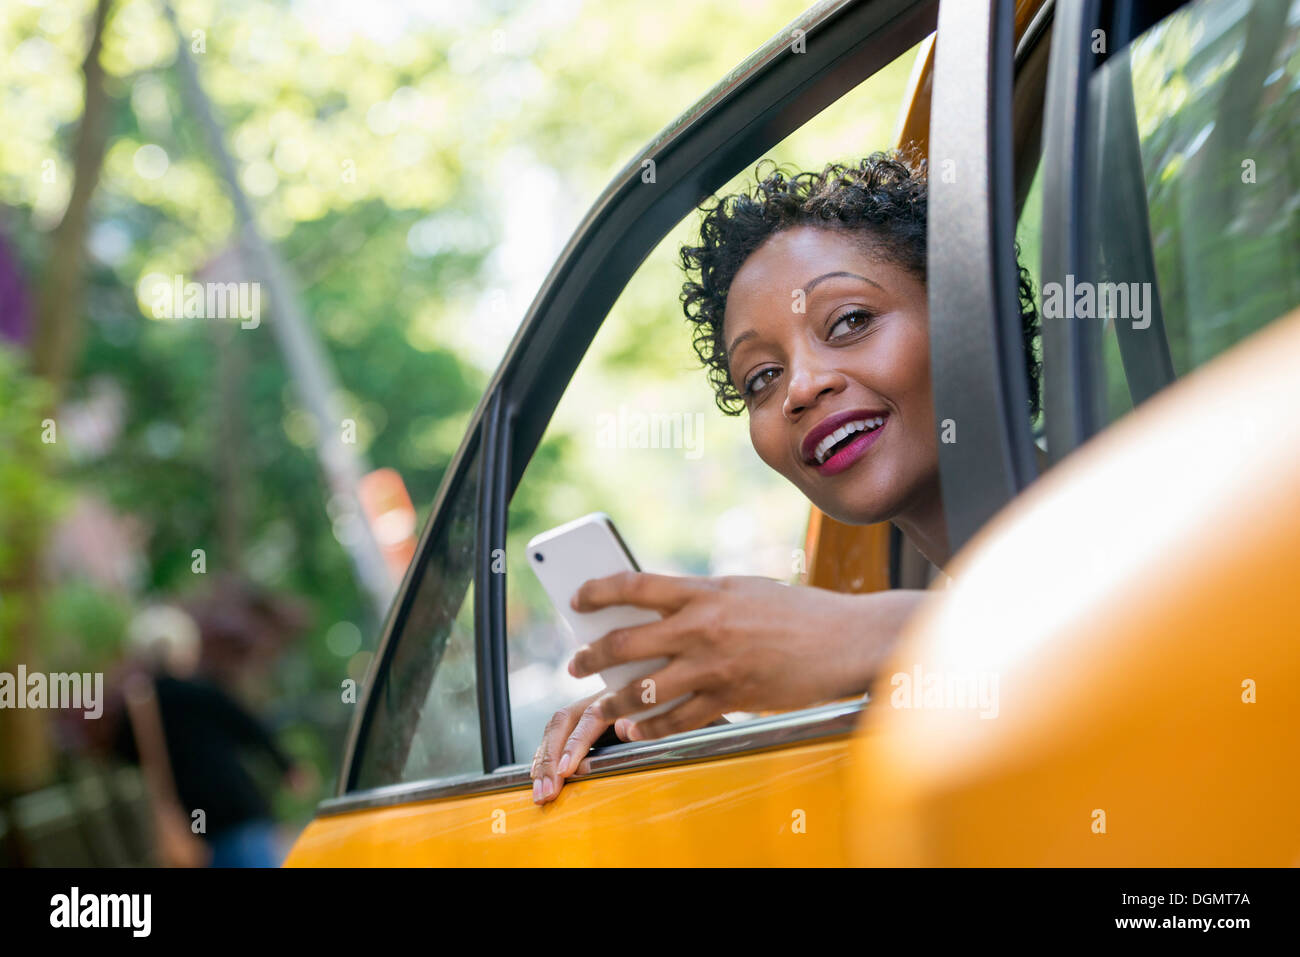 A woman sitting in the rear passenger seat of a yellow cab, checking her phone. - Stock Image